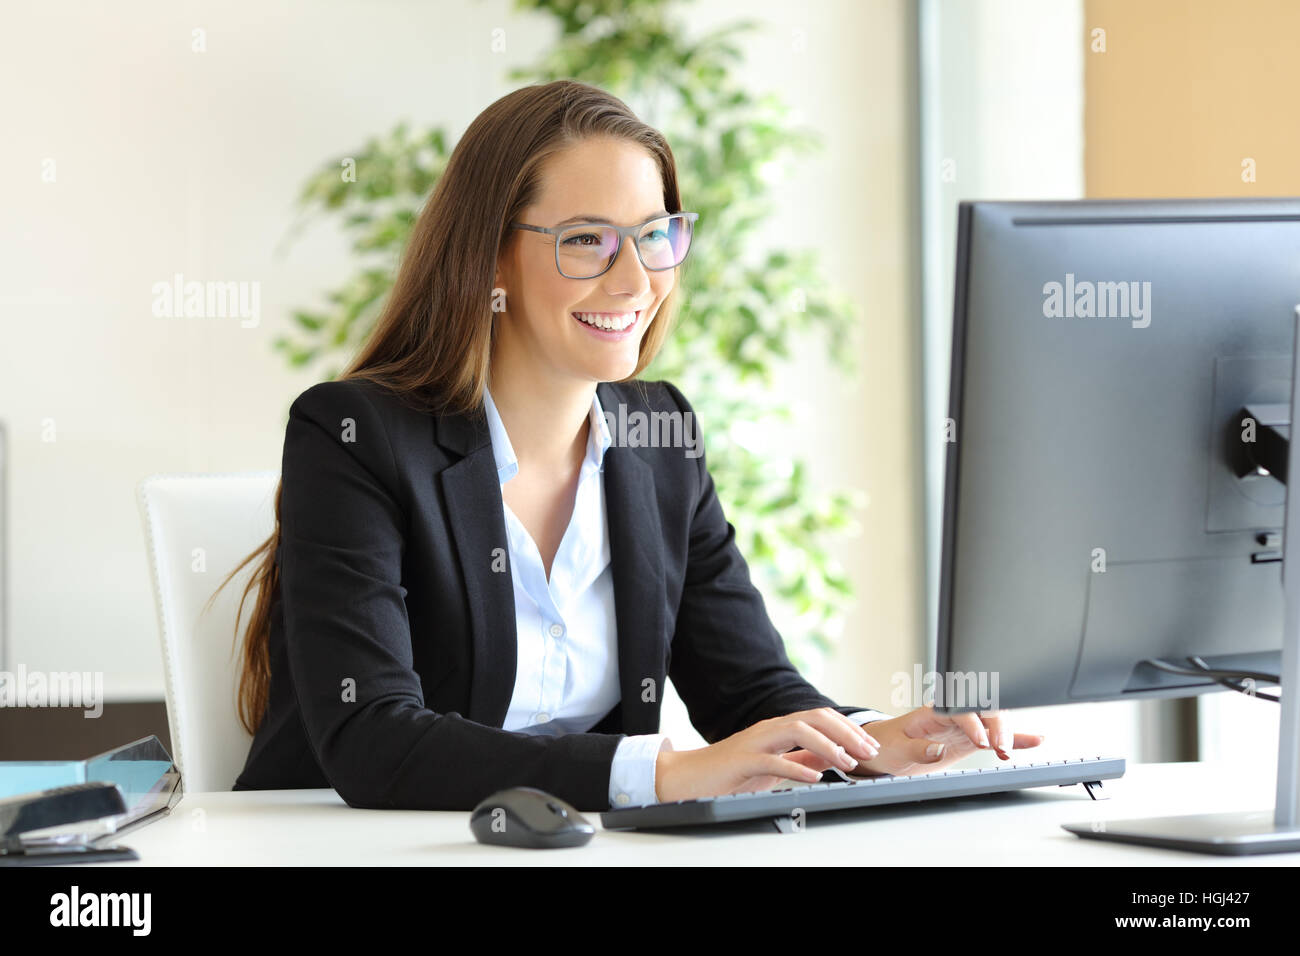 Businesswoman wearing glasses travaillant avec un ordinateur de bureau au bureau Photo Stock